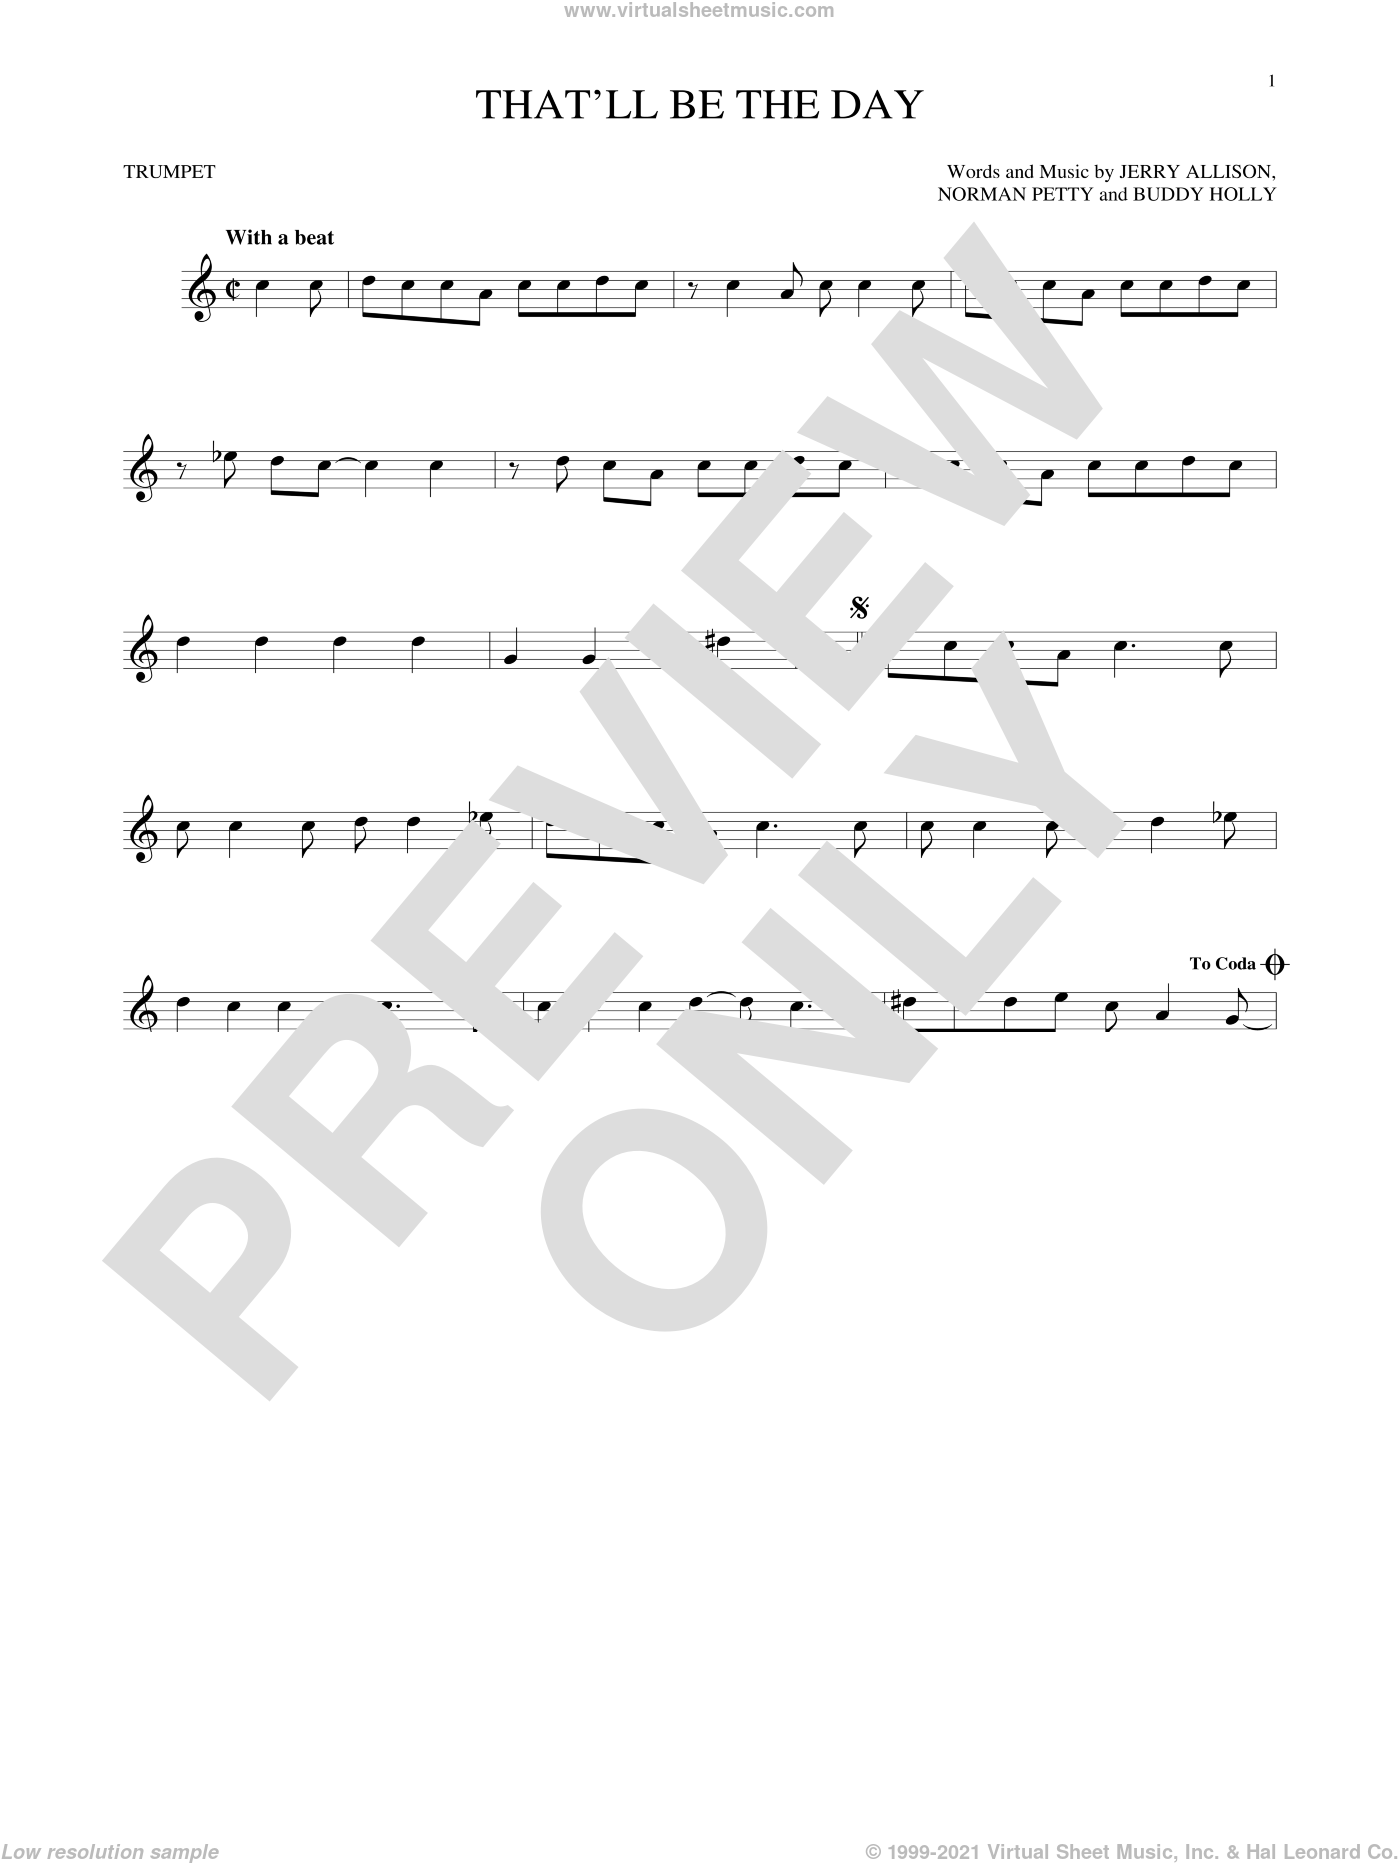 That'll Be The Day sheet music for trumpet solo by The Crickets, Buddy Holly, Jerry Allison and Norman Petty, intermediate skill level